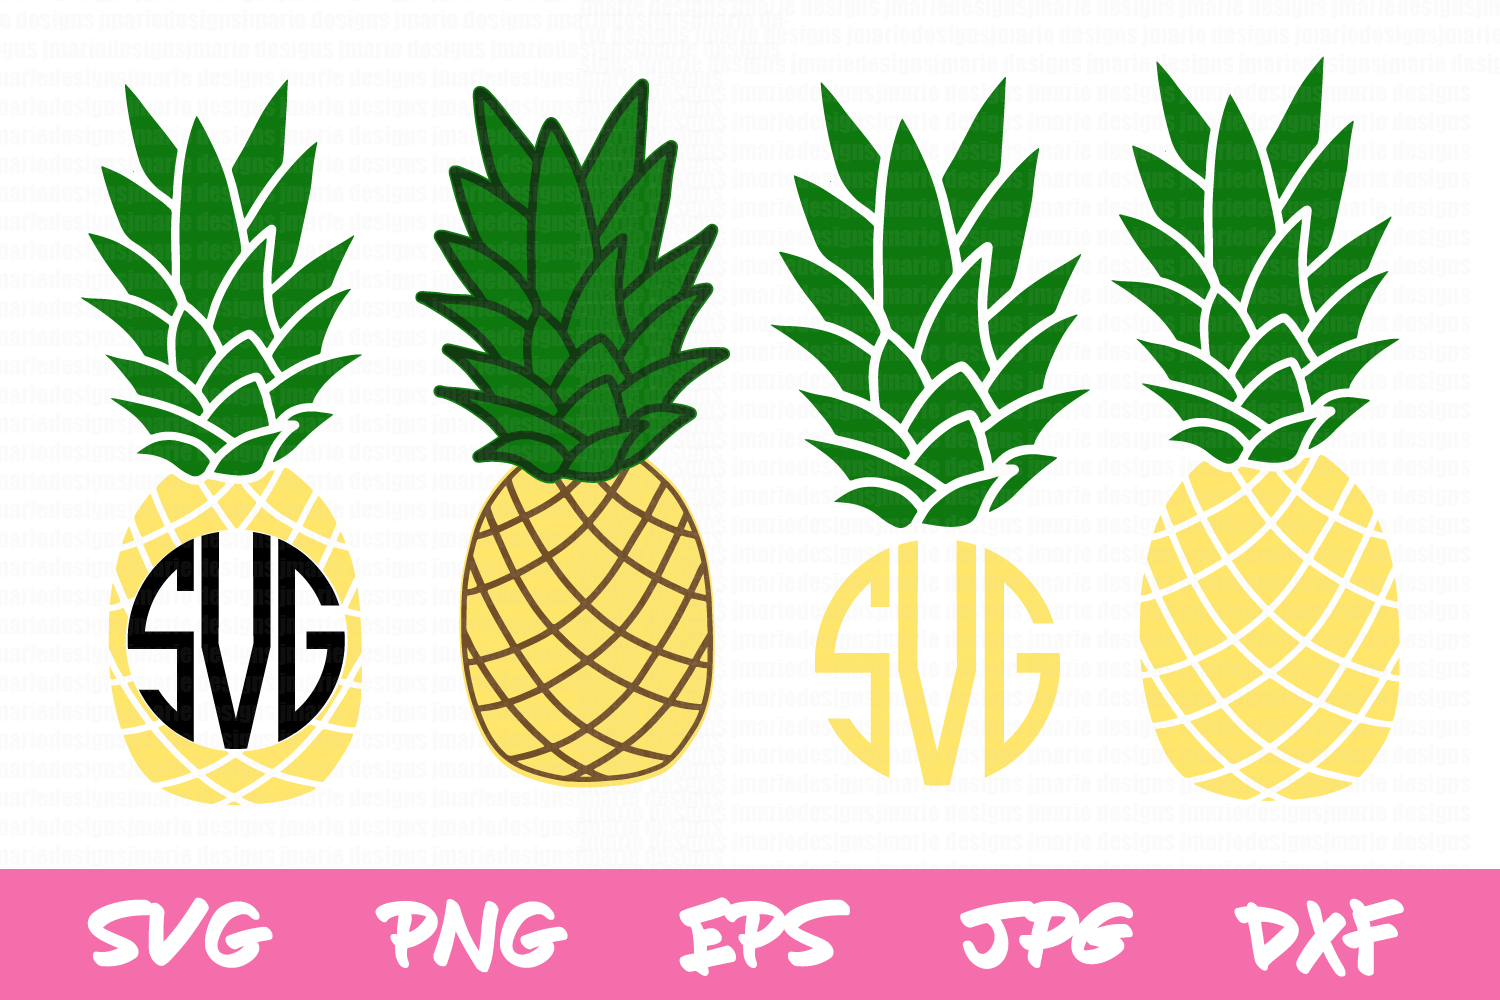 Download Free Pineapple Monogram Svg Pineapple Svg Graphic By Thejaemarie for Cricut Explore, Silhouette and other cutting machines.